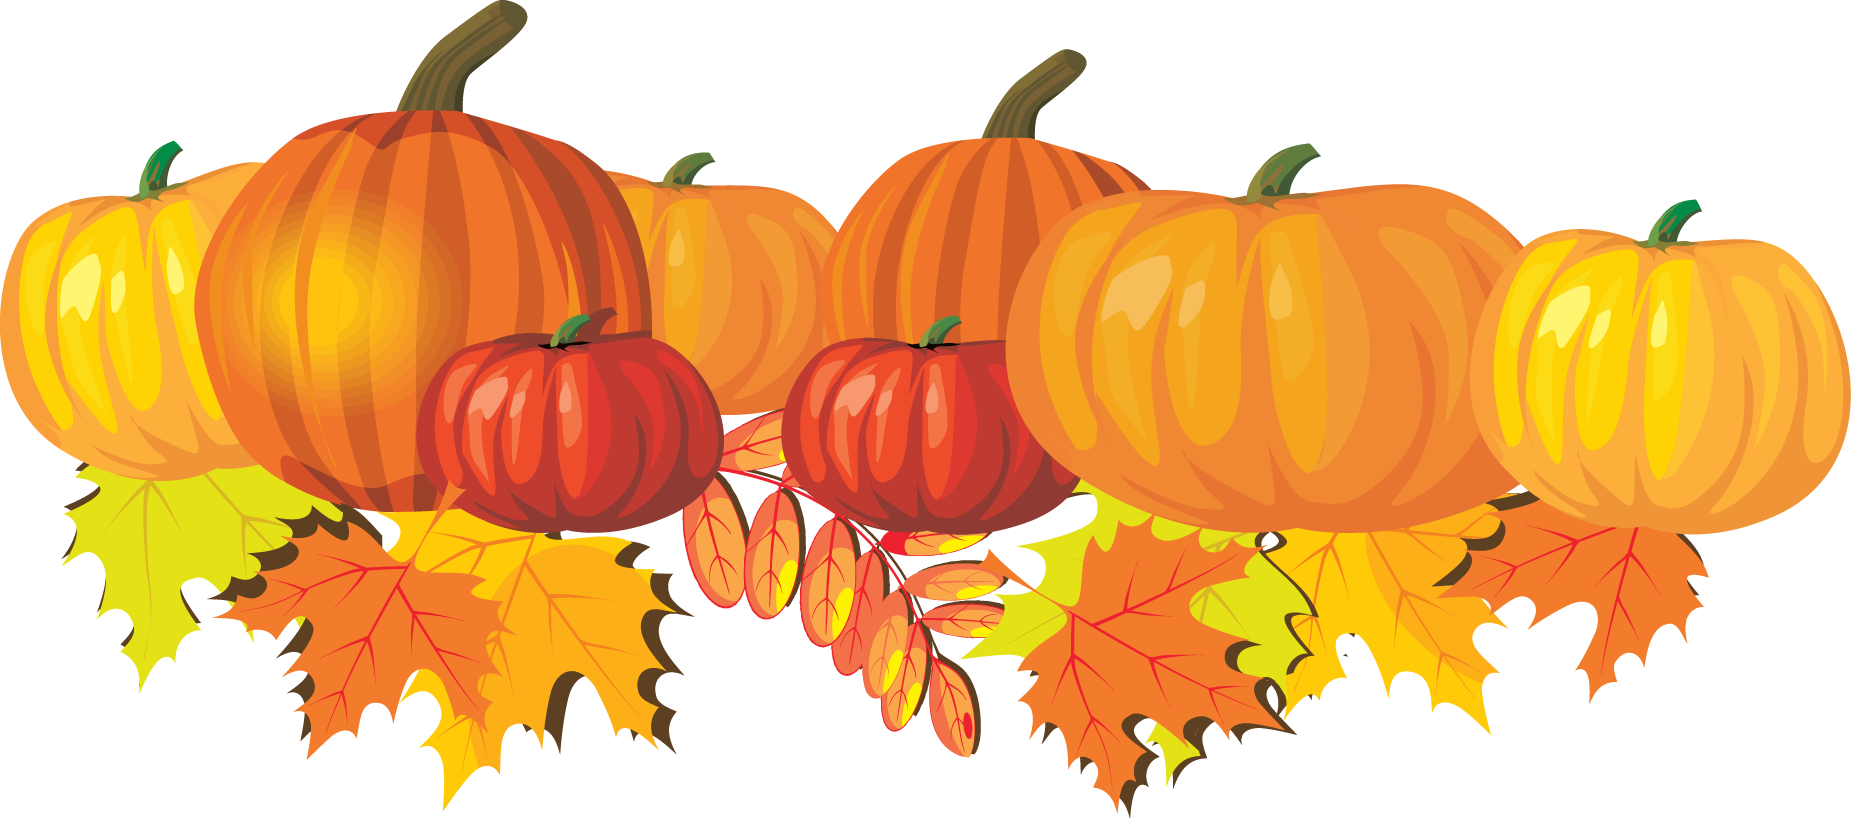 Autumn fall festival clipart free images.